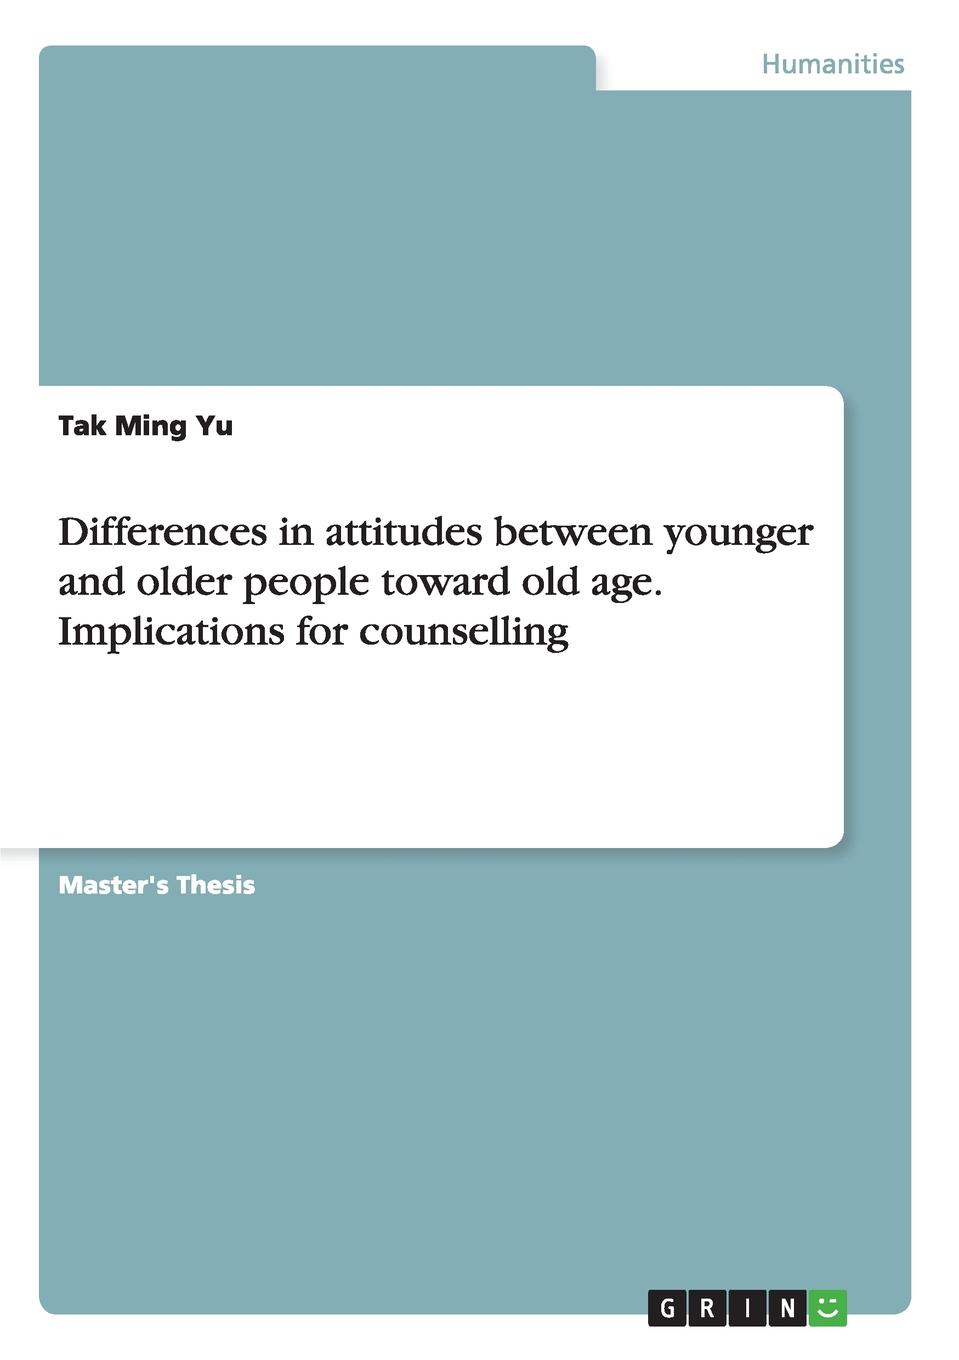 Tak Ming Yu Differences in attitudes between younger and older people toward old age. Implications for counselling tak ming yu differences in attitudes between younger and older people toward old age implications for counselling